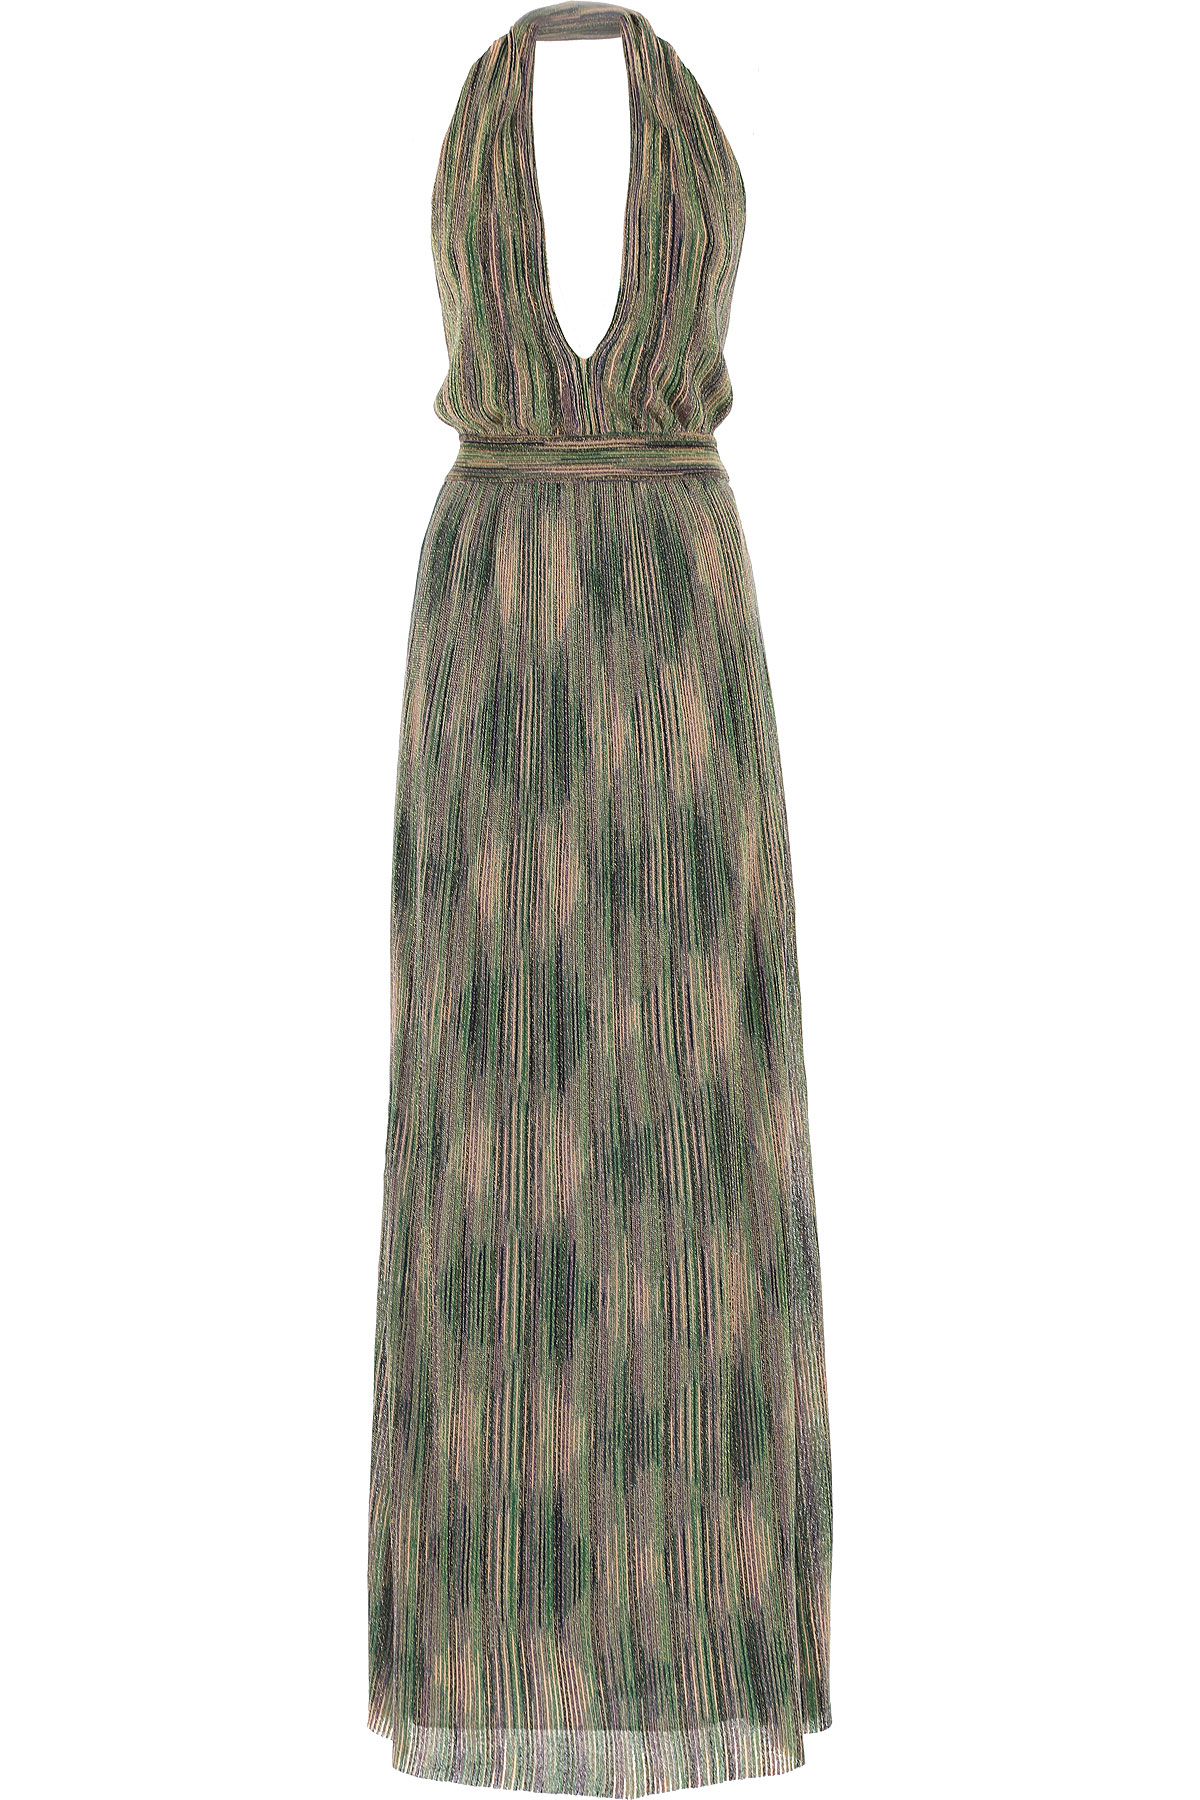 Image of Missoni Dress for Women, Evening Cocktail Party, Green, viscosa, 2017, 4 6